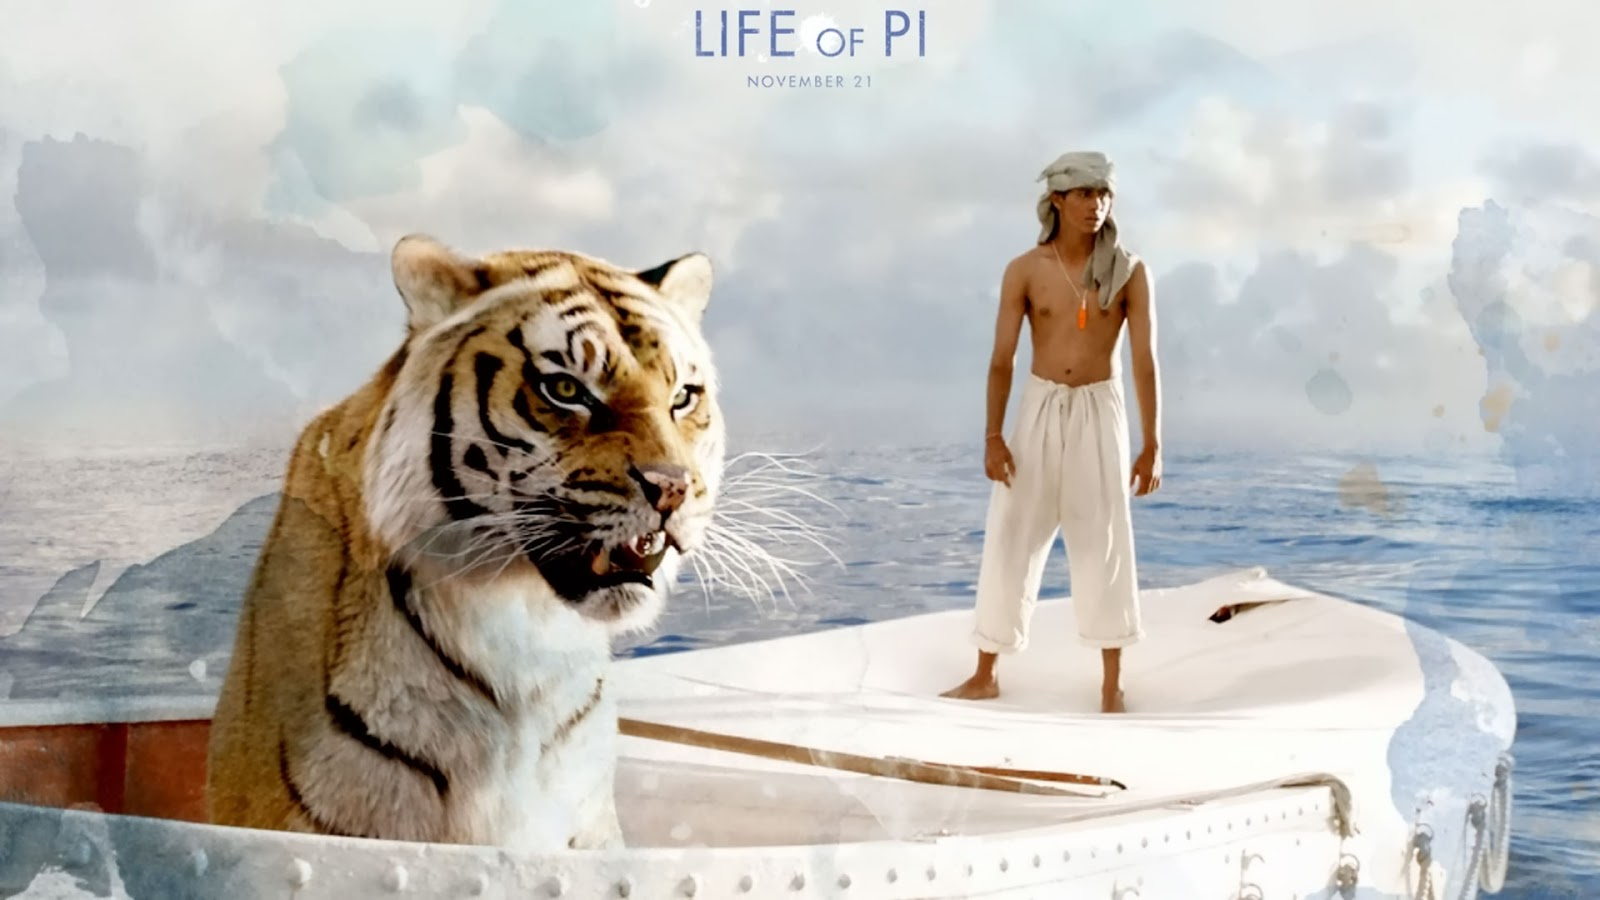 X X Chibi Xai X X Life Of Pi Movie Analysis